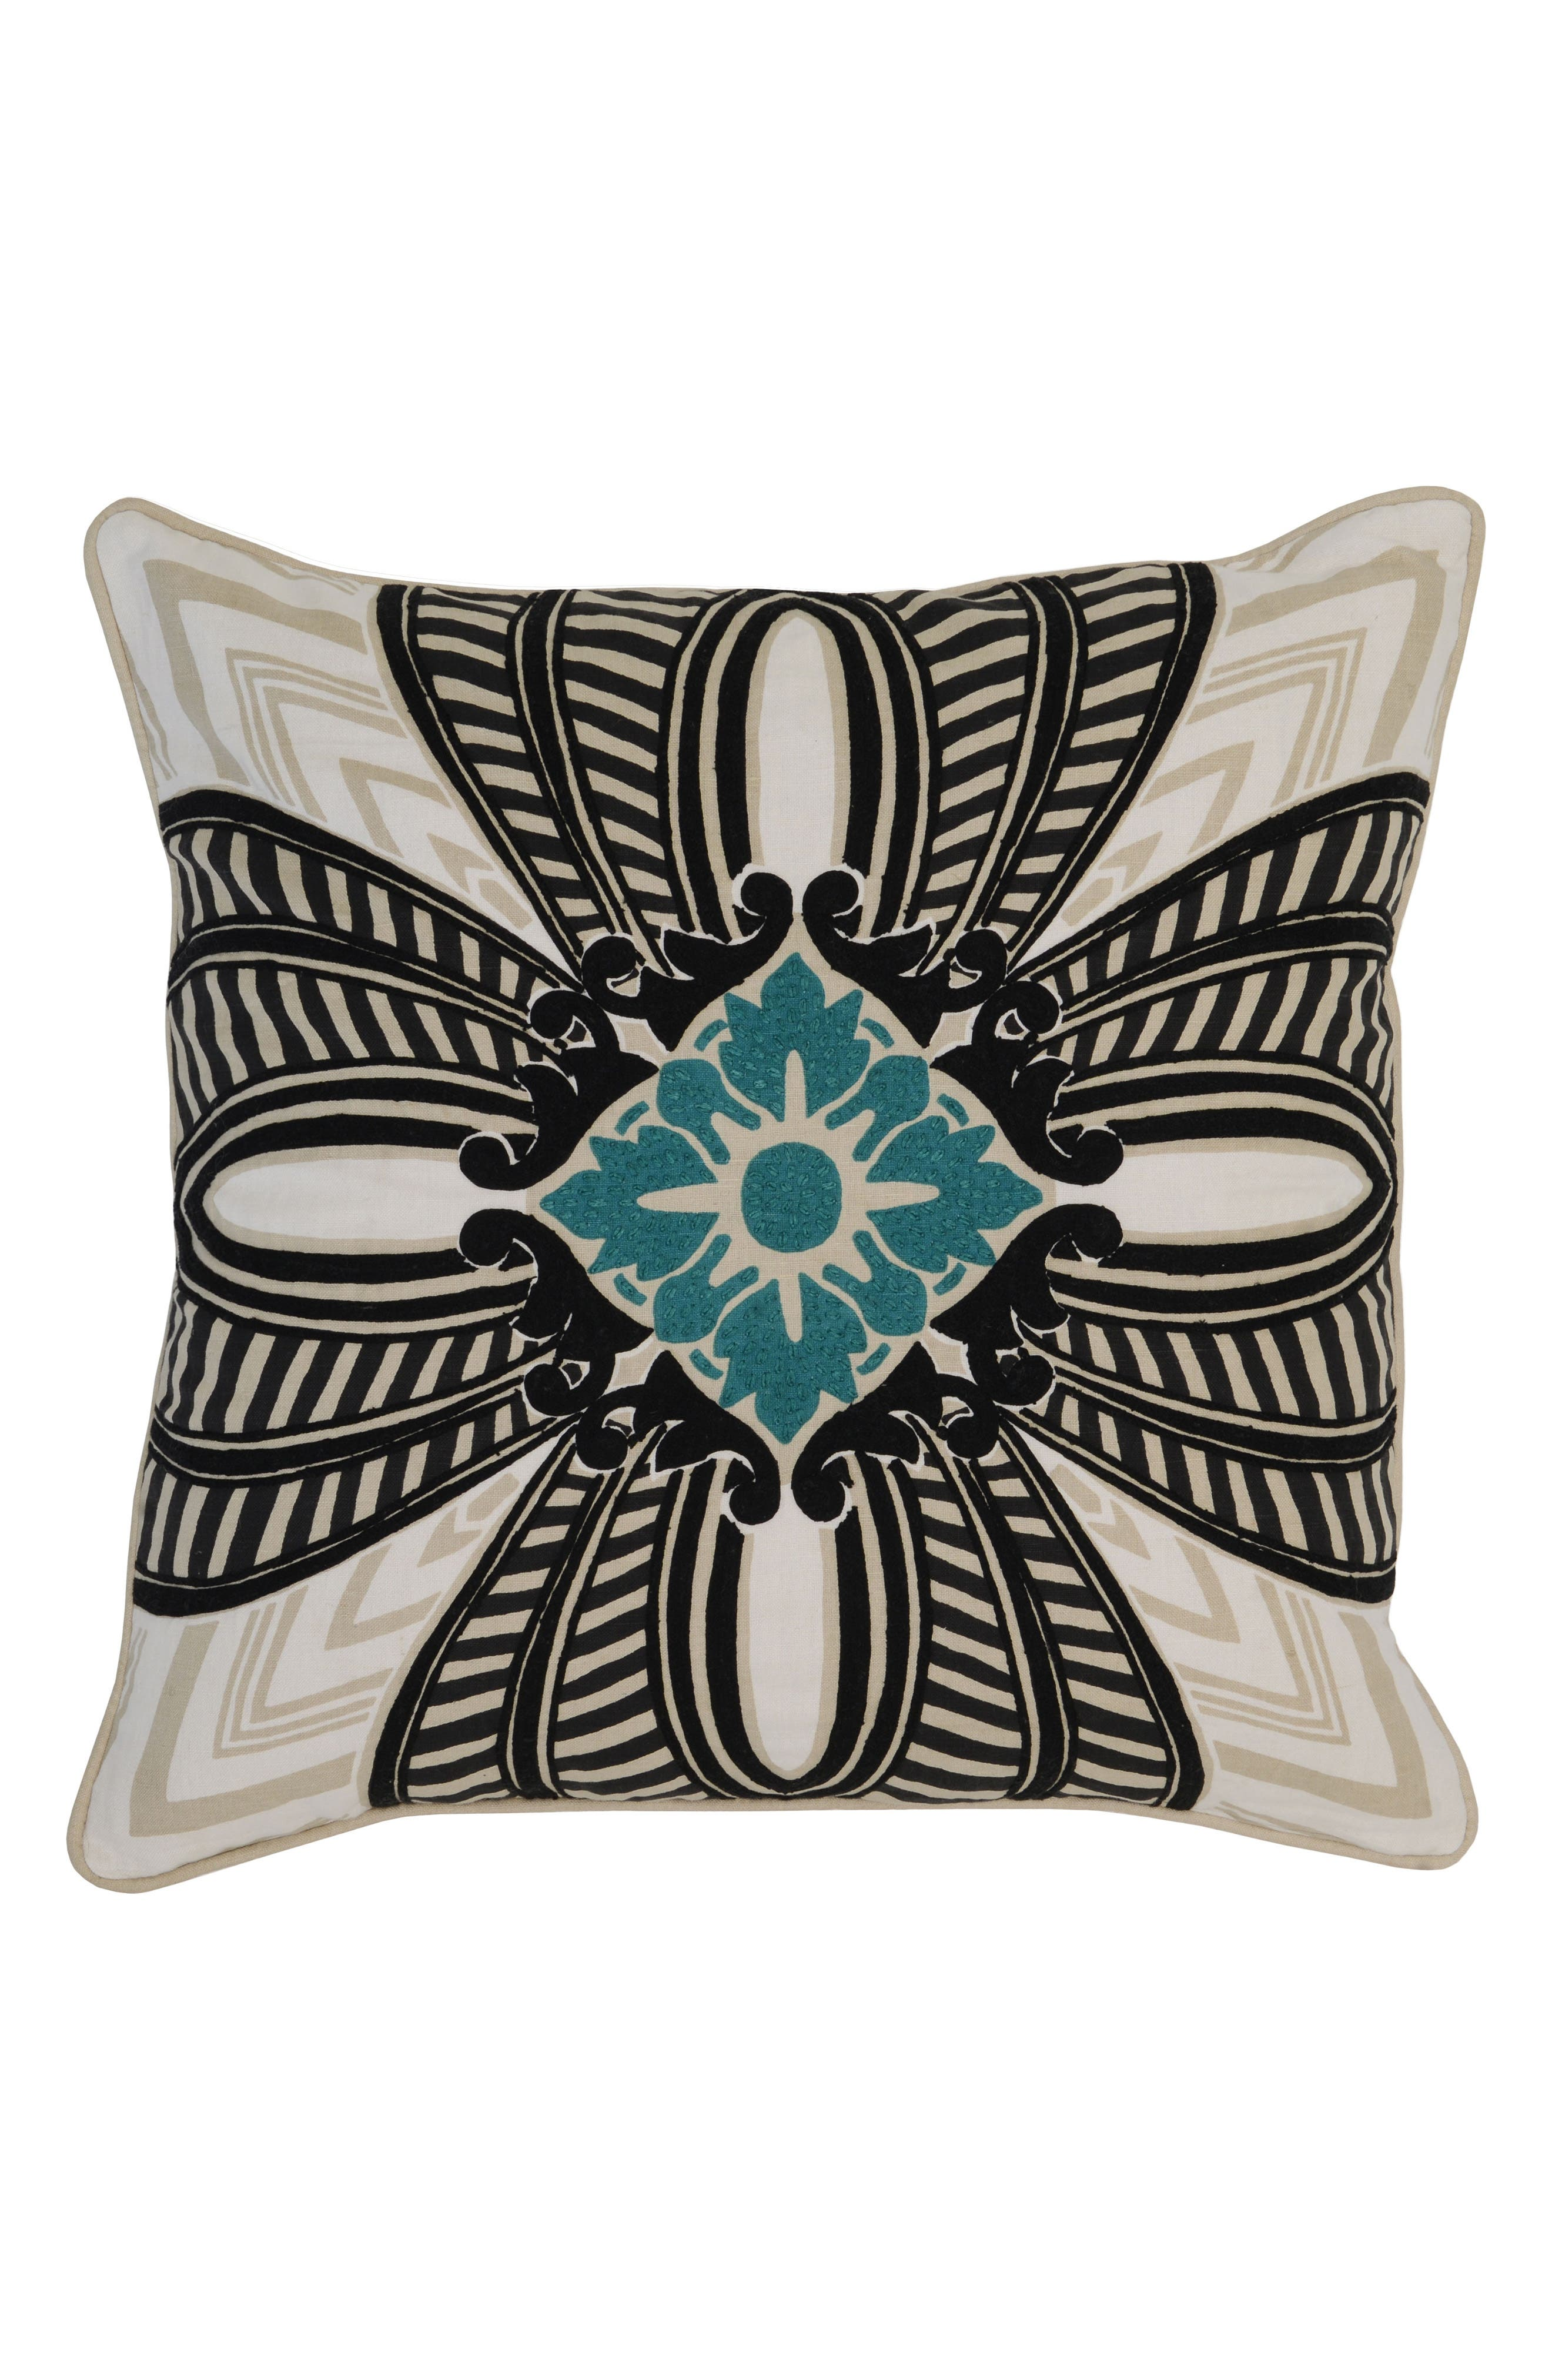 Cabos Accent Pillow,                         Main,                         color, Black/ Ivory/ Teal